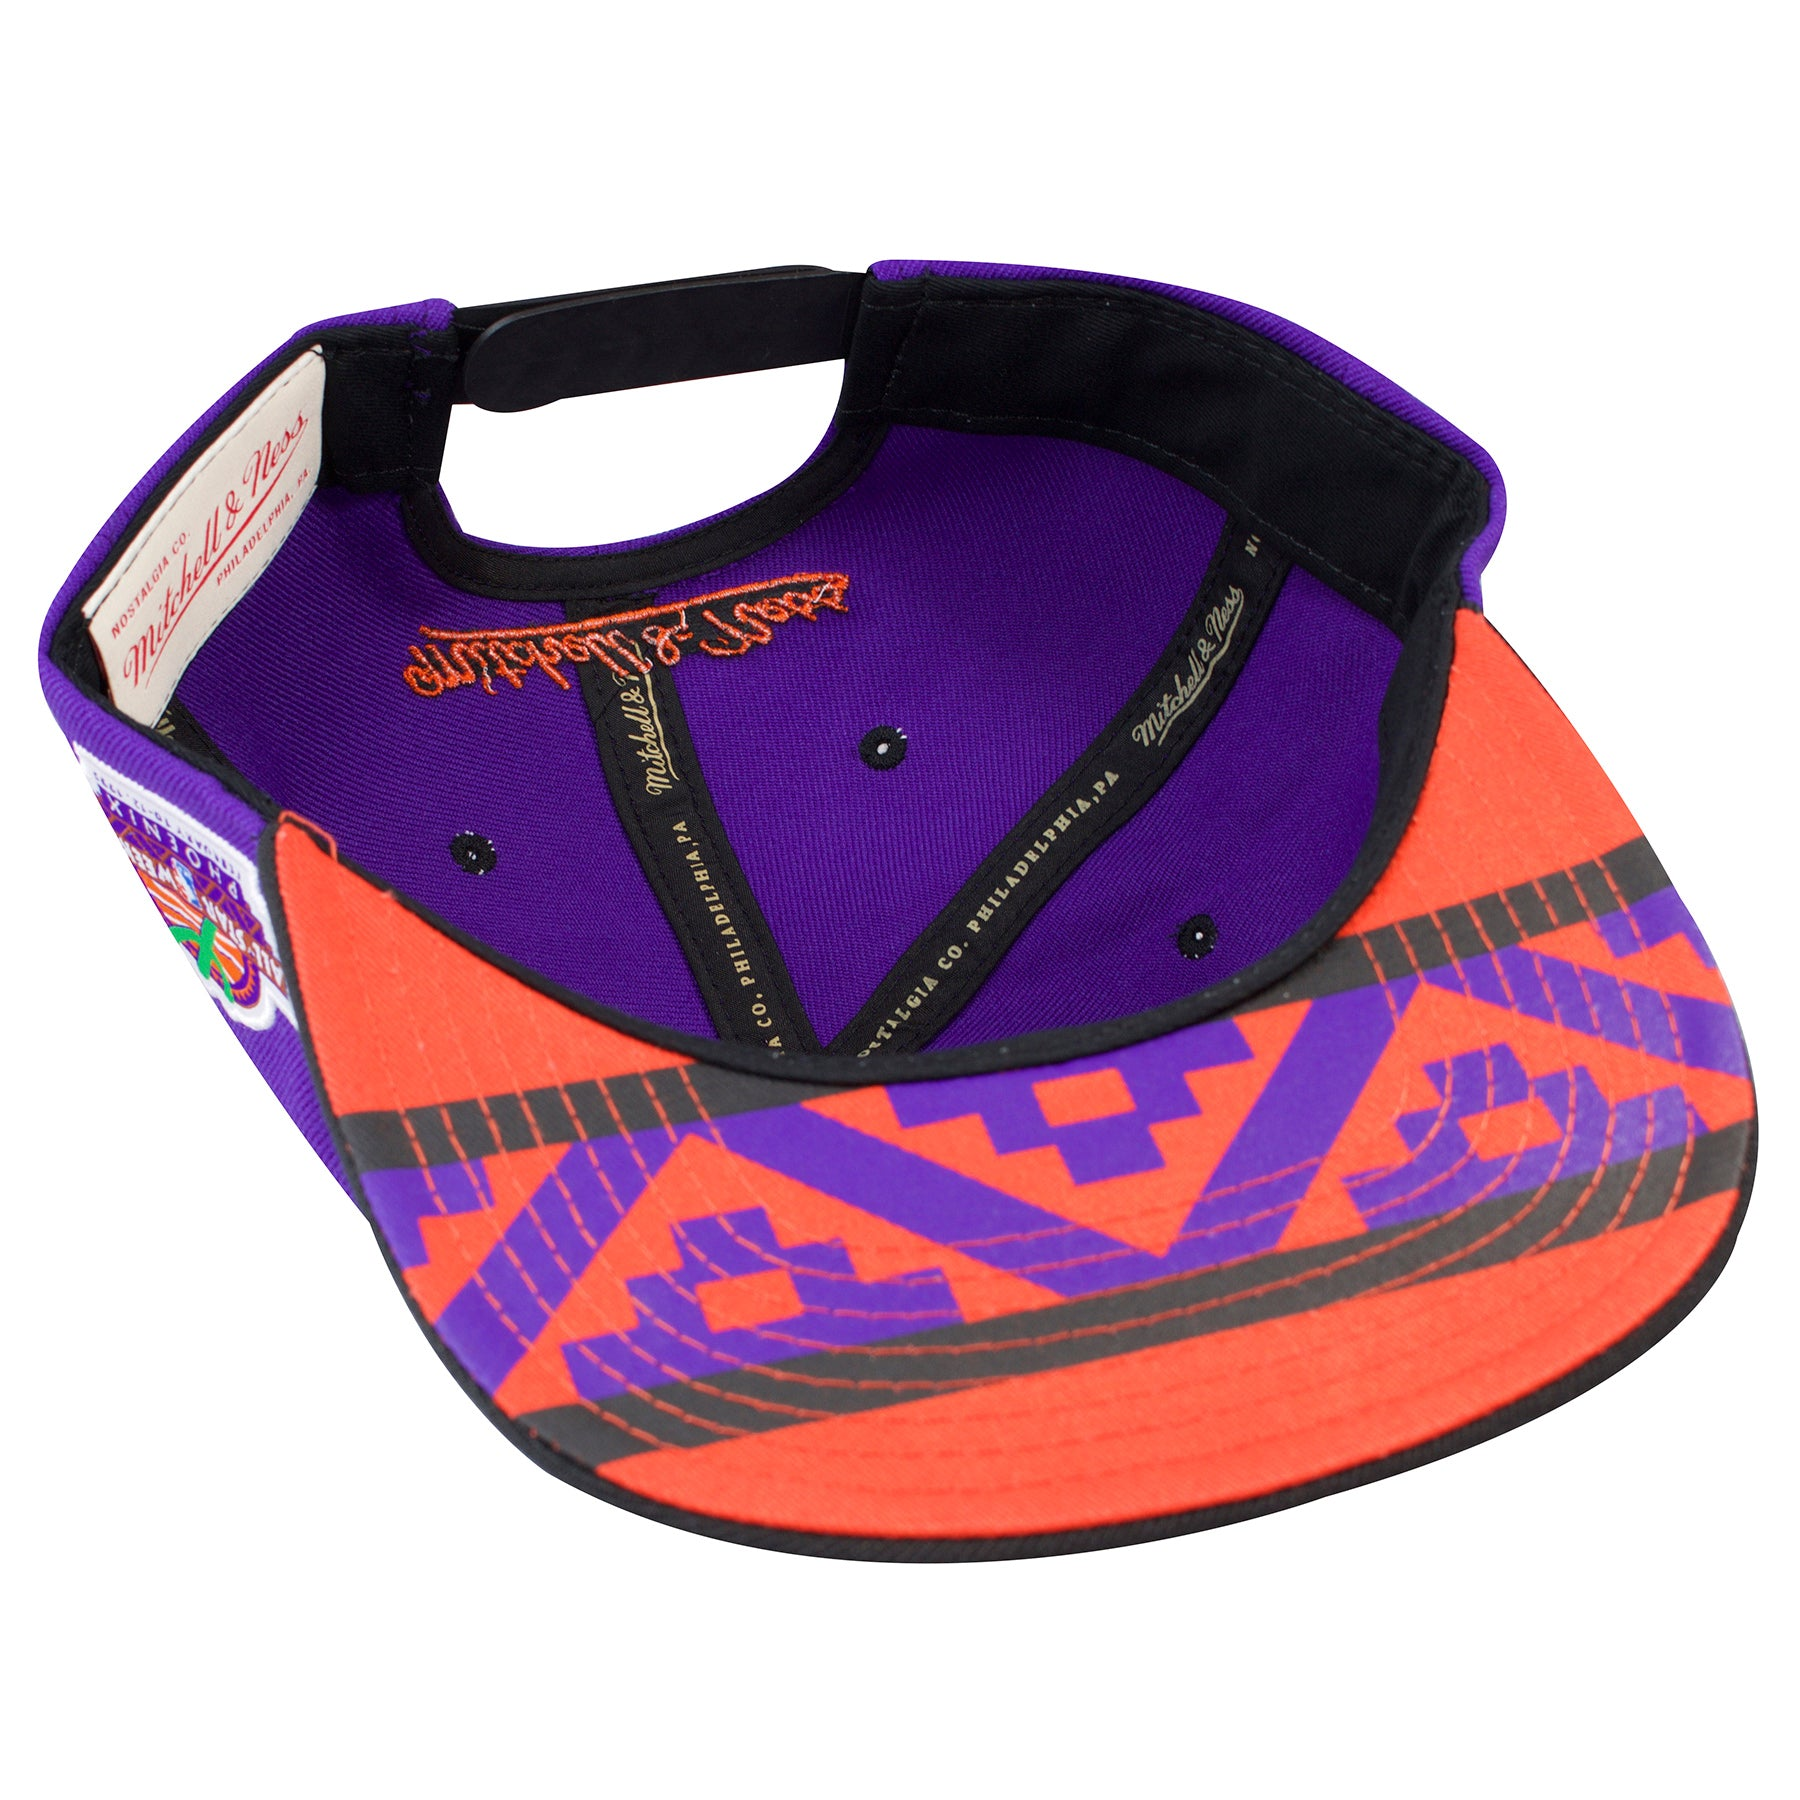 new arrival cf01f 8c2e9 ... mitchell and ness · the under brim of the phoenix suns 1995 all star  weekend snapback hat is an orange